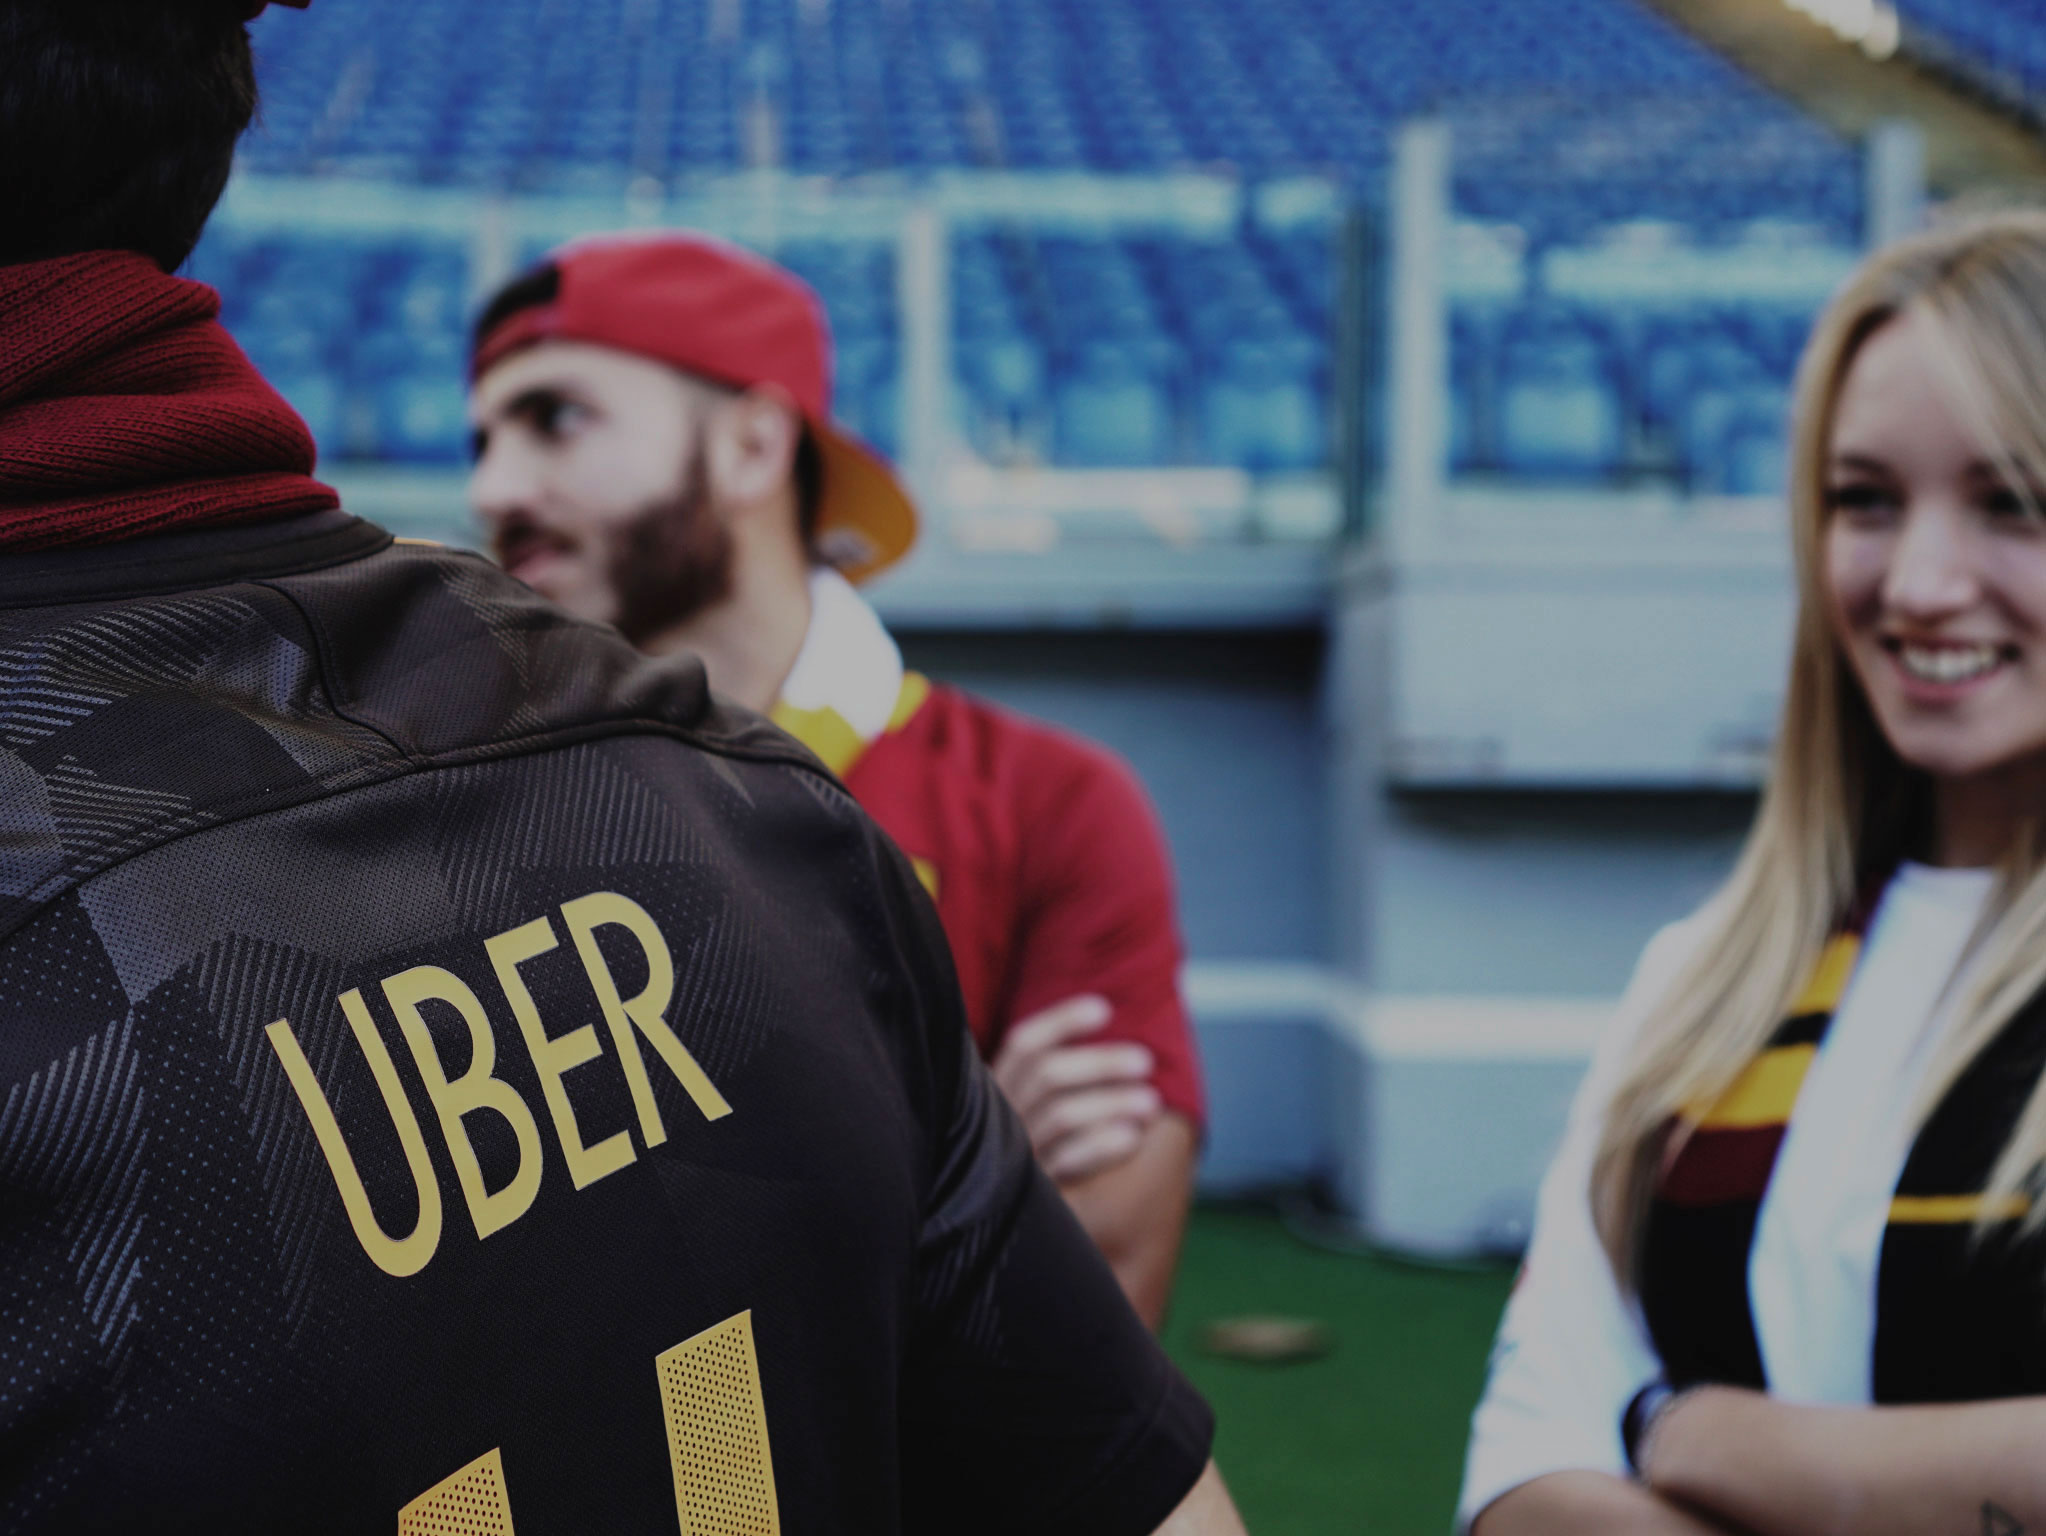 Uber & A.S. Roma